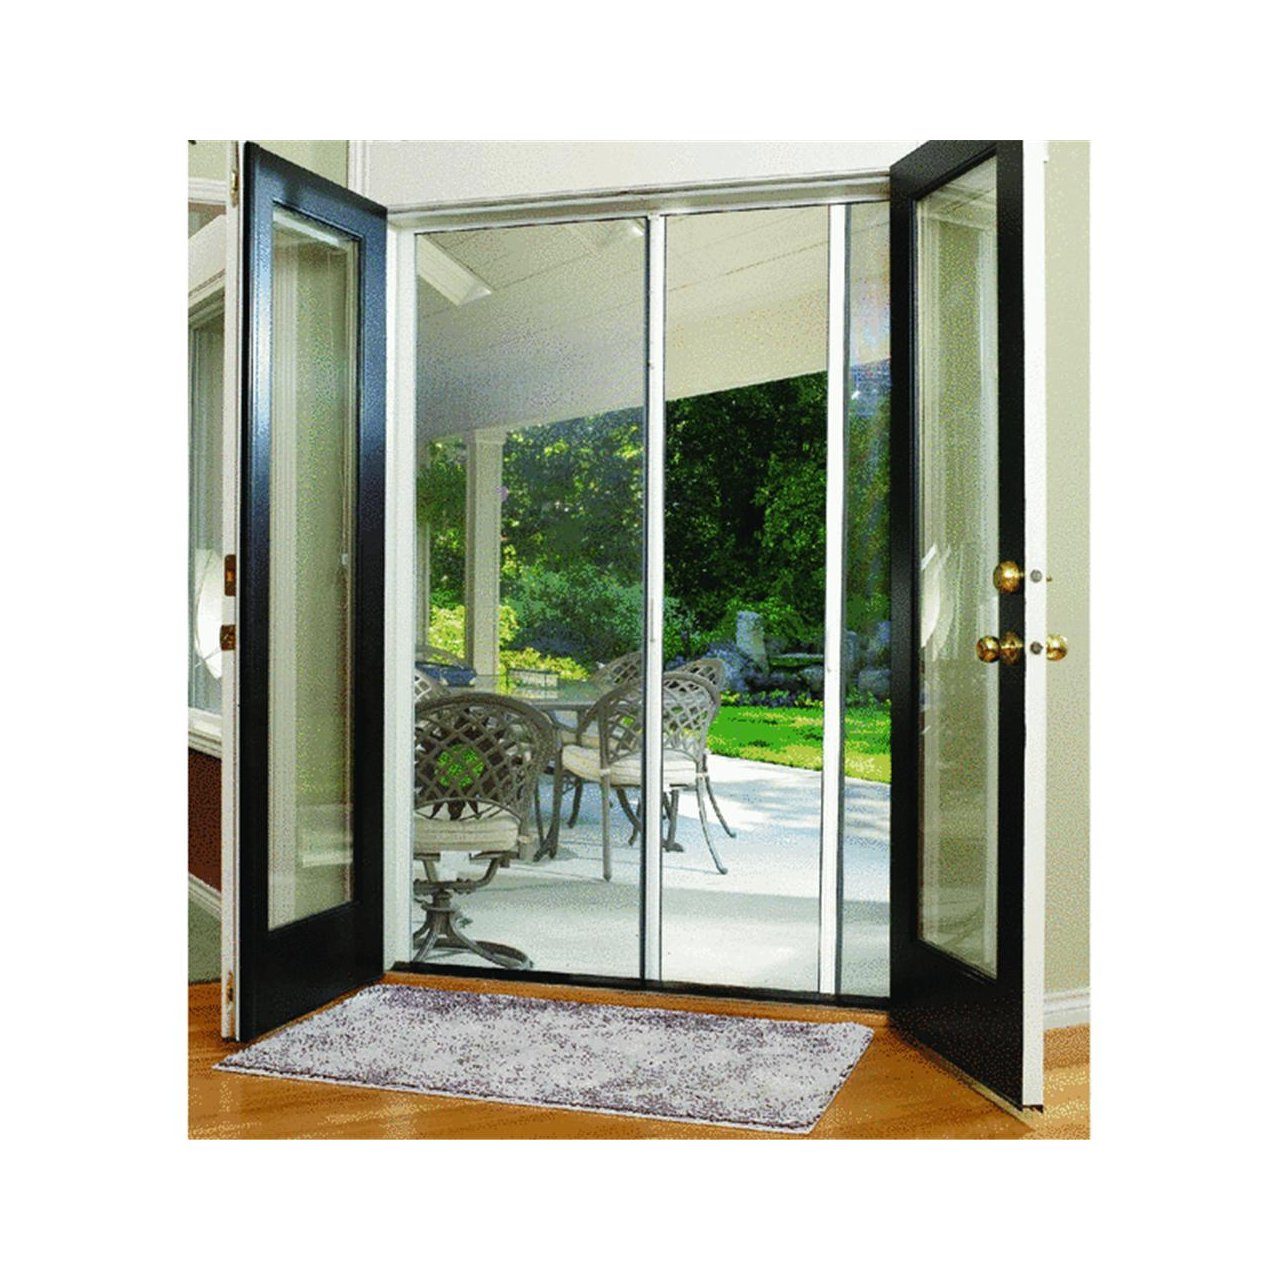 larson french storm door kits long hairstyles On french storm doors